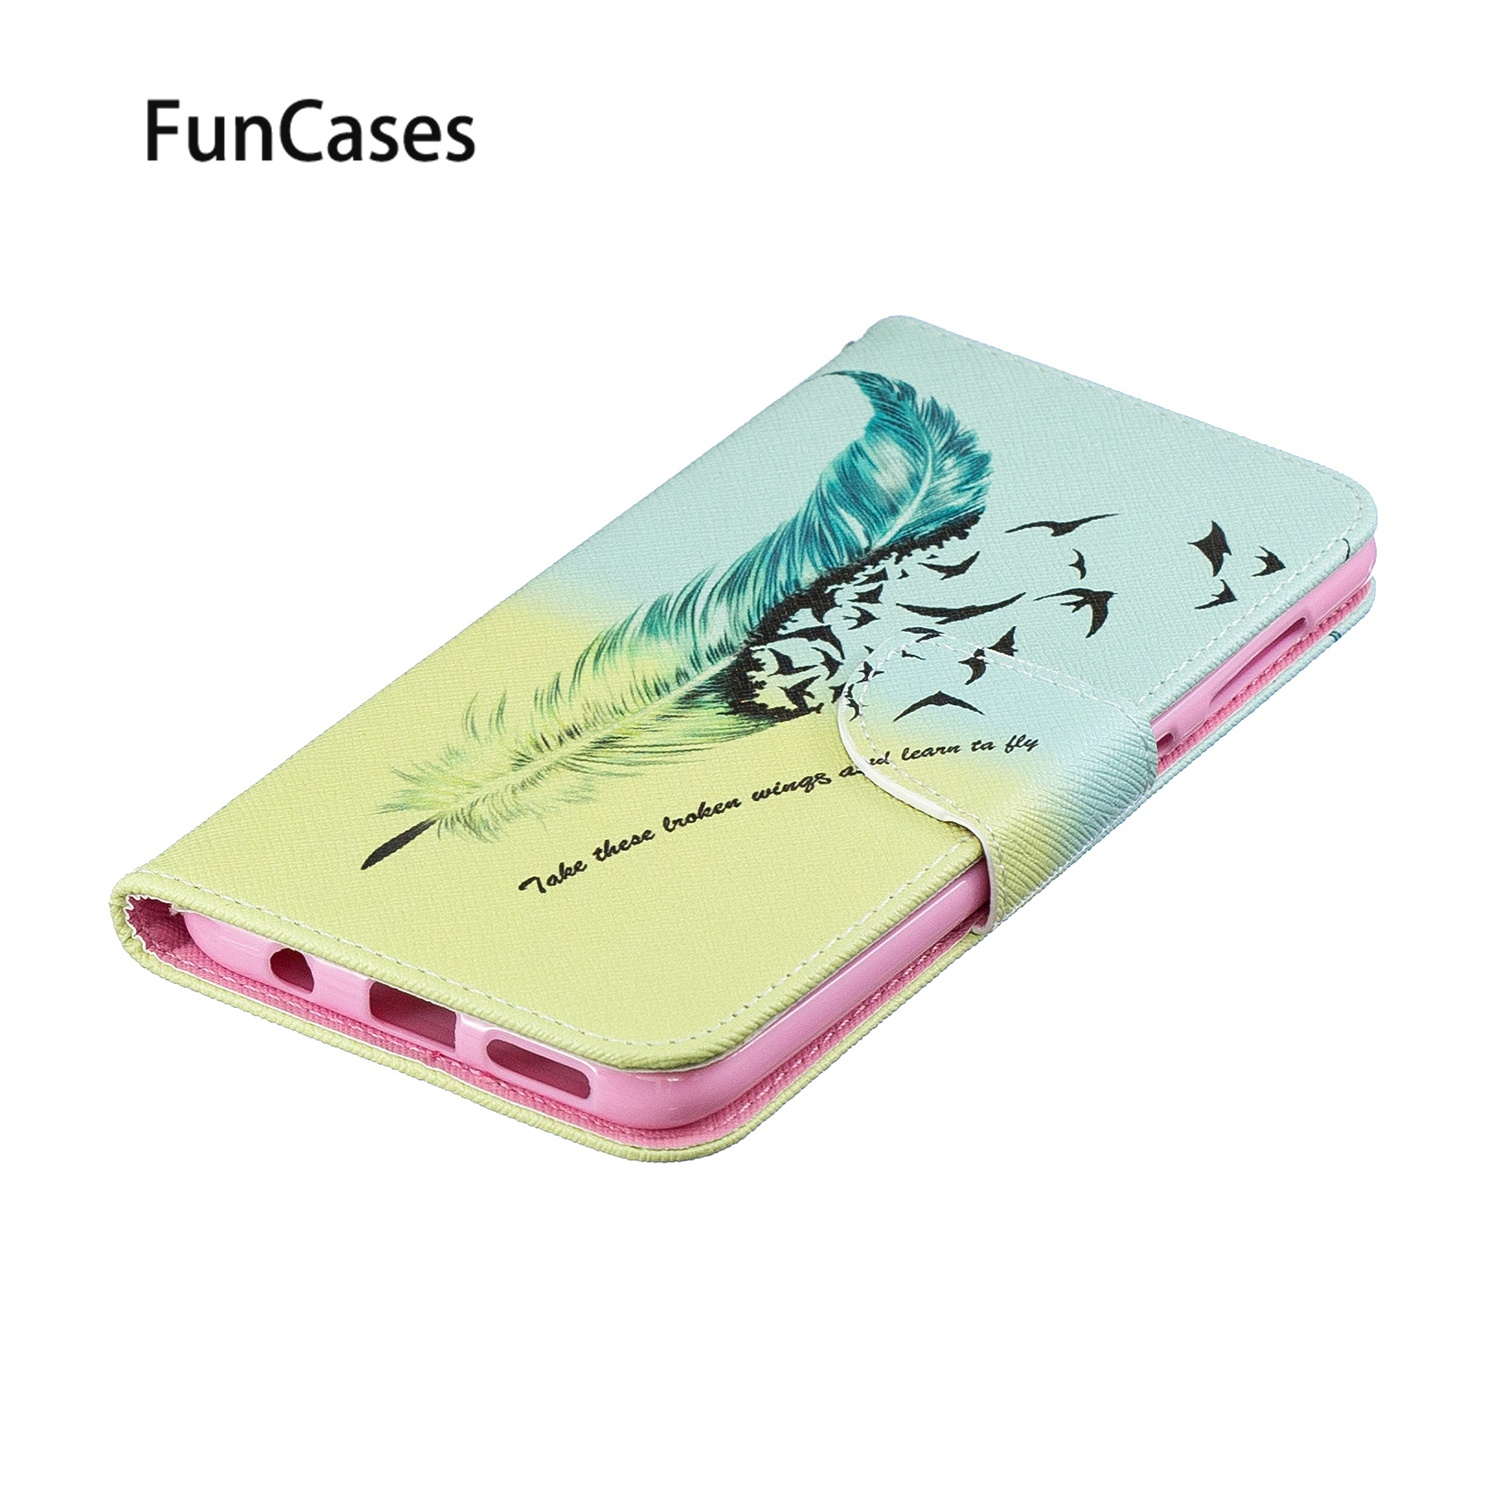 Butterfly And Flower PU Leather Phone Bag For cover <font><b>Samsung</b></font> <font><b>A50</b></font> Phone Bag Cases sFor Shell <font><b>Samsung</b></font> Galaxy <font><b>hoesje</b></font> A50S A30S Caso image